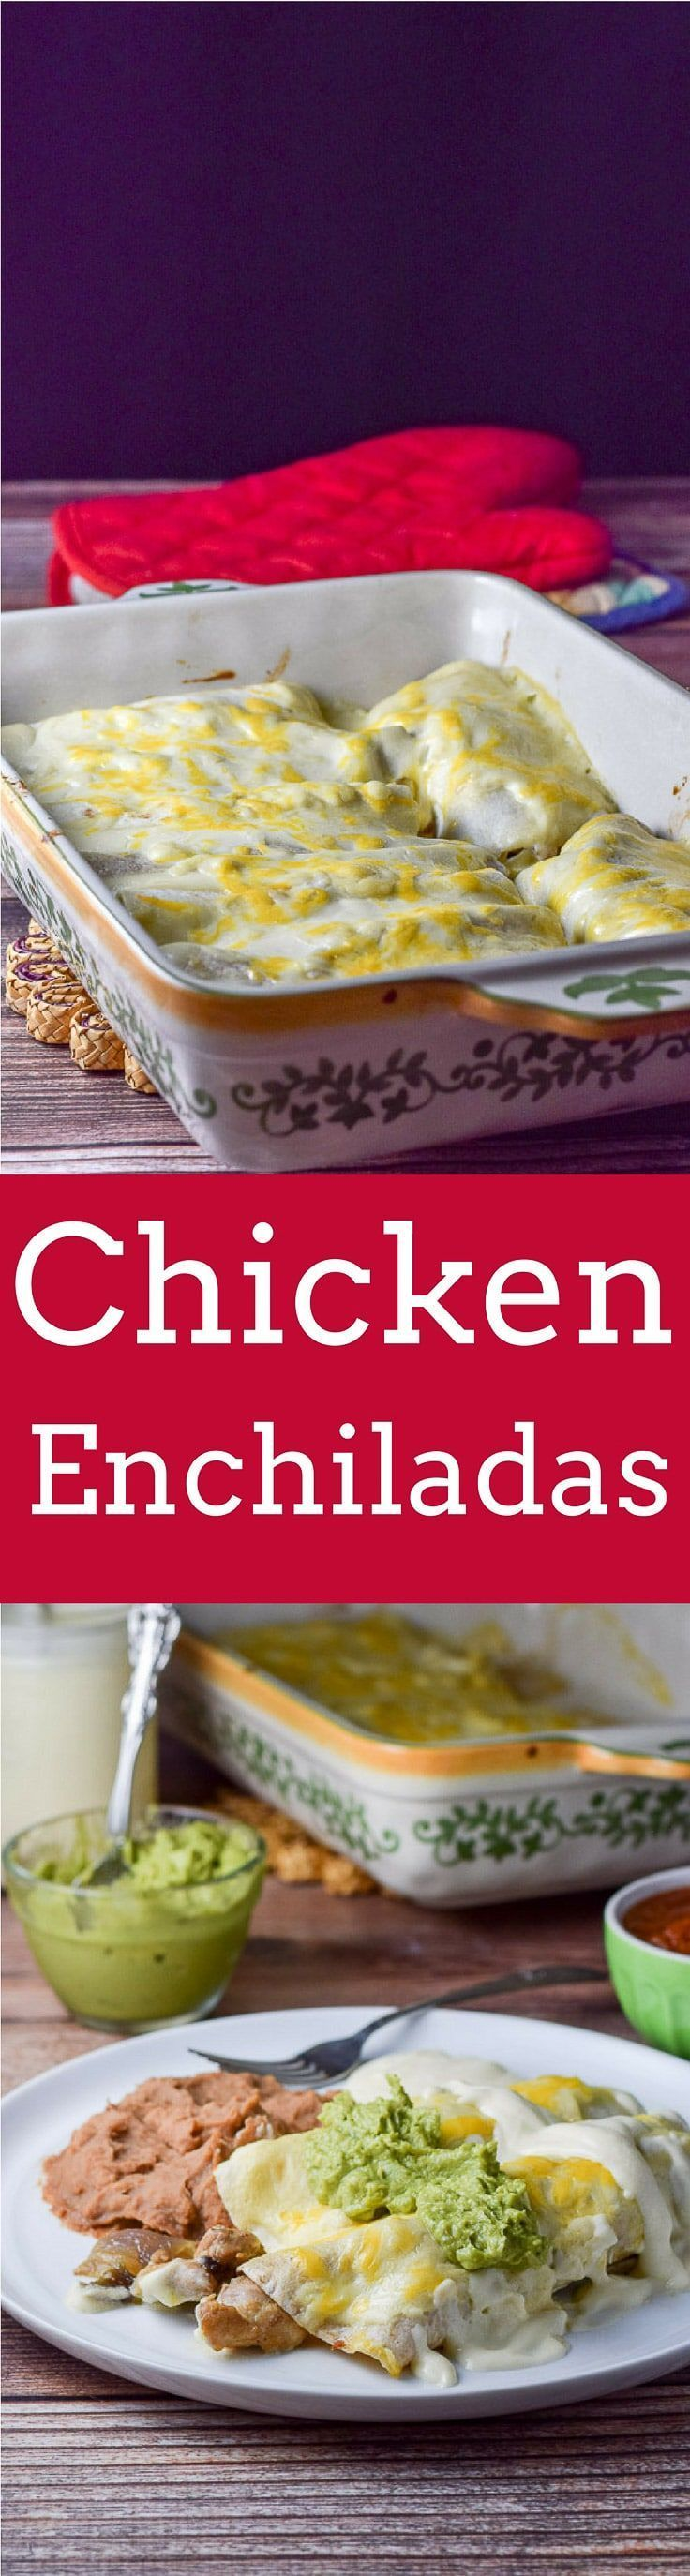 Easy Chicken Enchiladas with Sour Cream Sauce so easy and extra delicious!  Chicken thigh meat sautéd with shallots, rolled in tortillas and slathered with sour cream sauce https://ddel.co/echicen via @dishesdelish